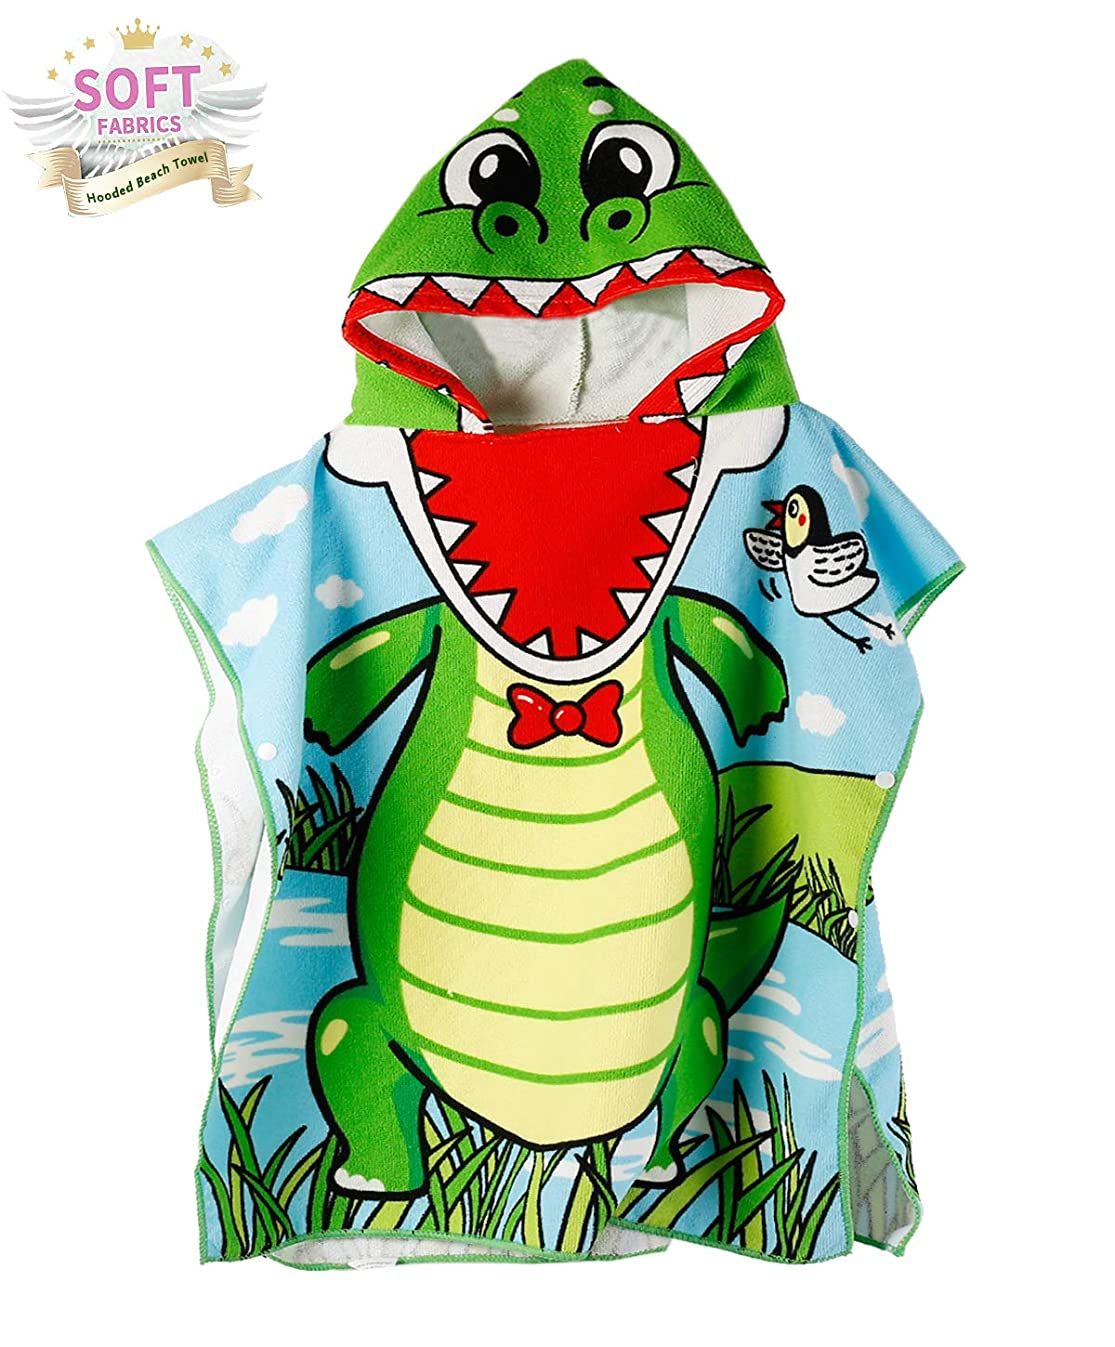 Genovega Toddler Hooded Beach Bath Towel – Baby Dinosaur Soft Beach Towel Swim Pool Coverup Poncho Cape for Boys Kids Children Gift, 1-7 Years Old Bath Robe